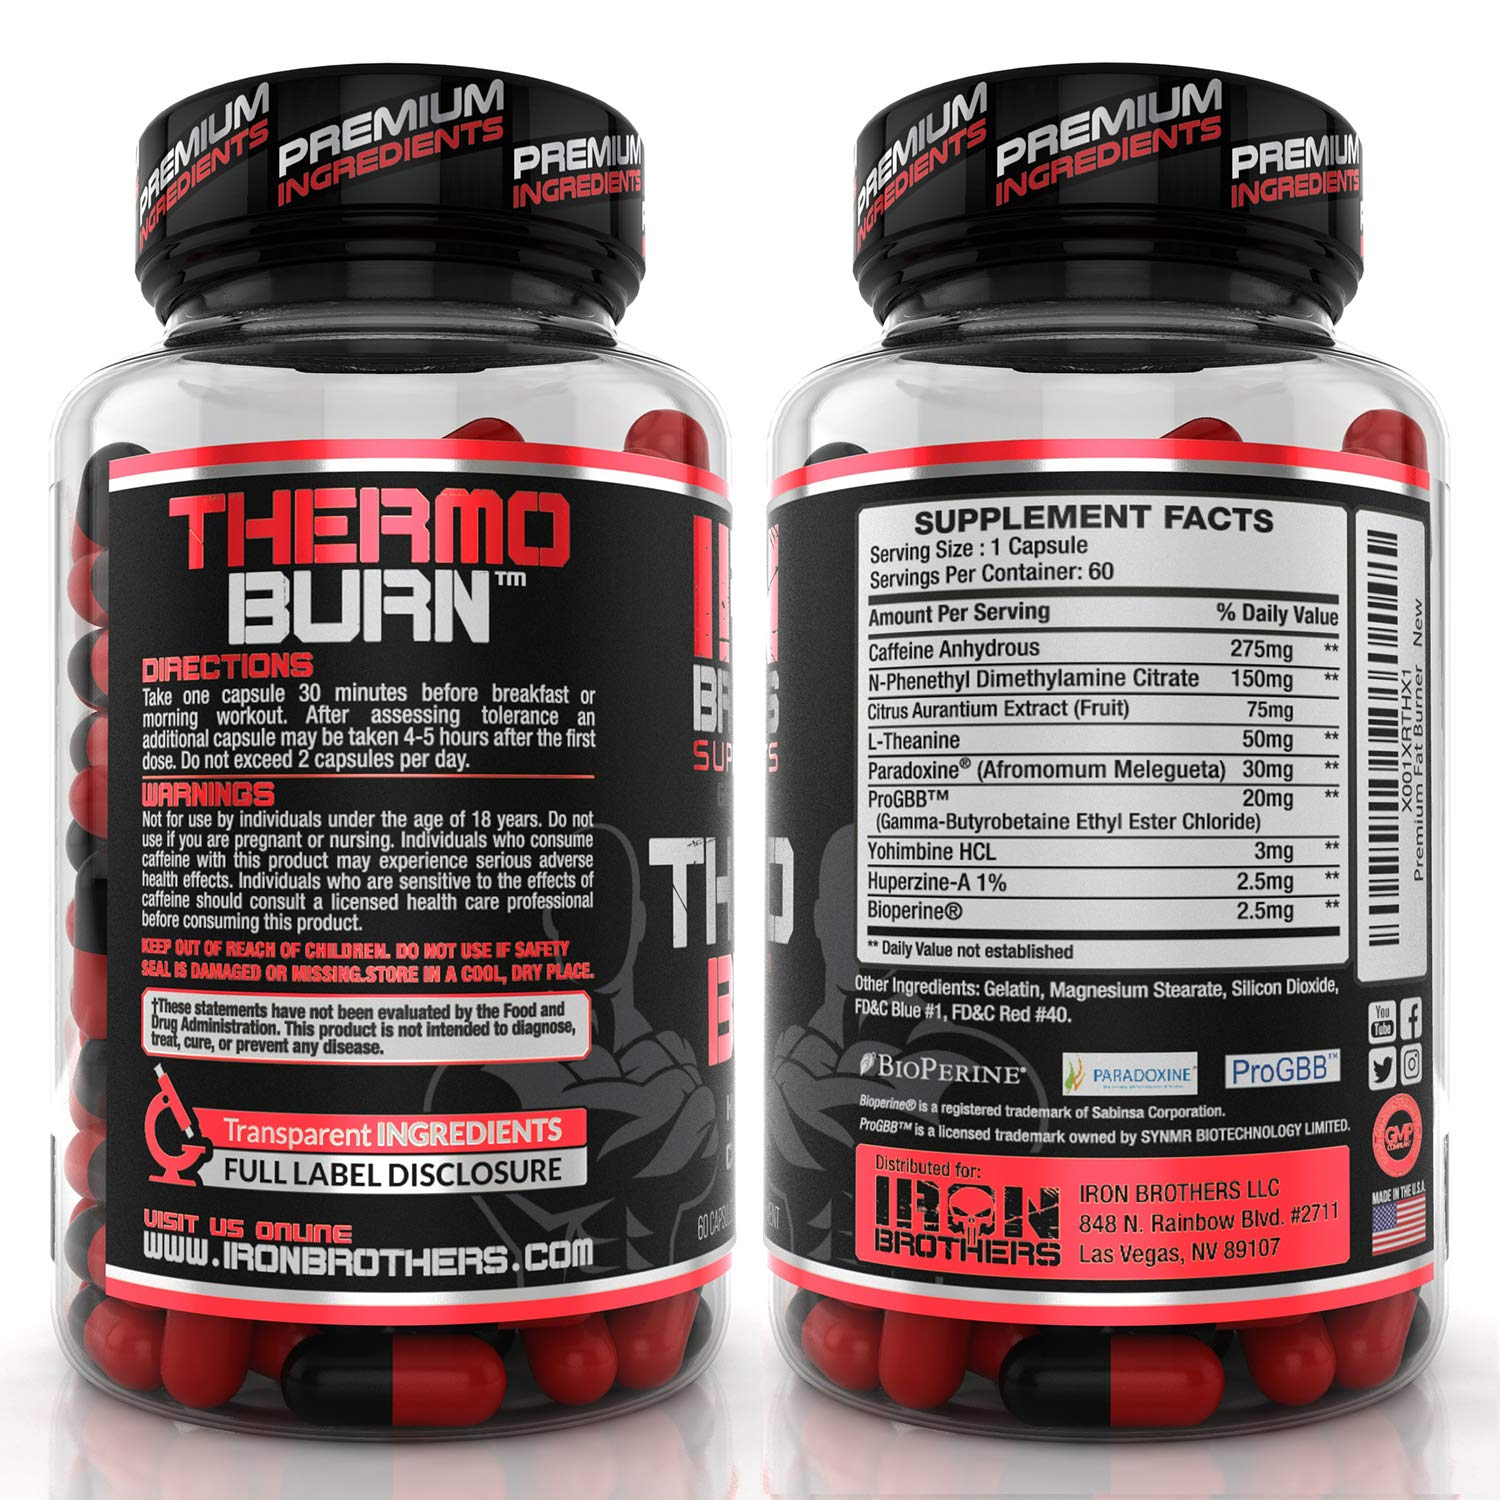 Thermogenic Fat Burners for Men/Women - Hardcore Weight Loss Pills - Appetite Suppressant- Premium Metabolism/Energy Booster - 60 Gel Capsules - Keto Friendly - Iron Brothers Thermo Burn by Iron Brothers Supplements (Image #2)